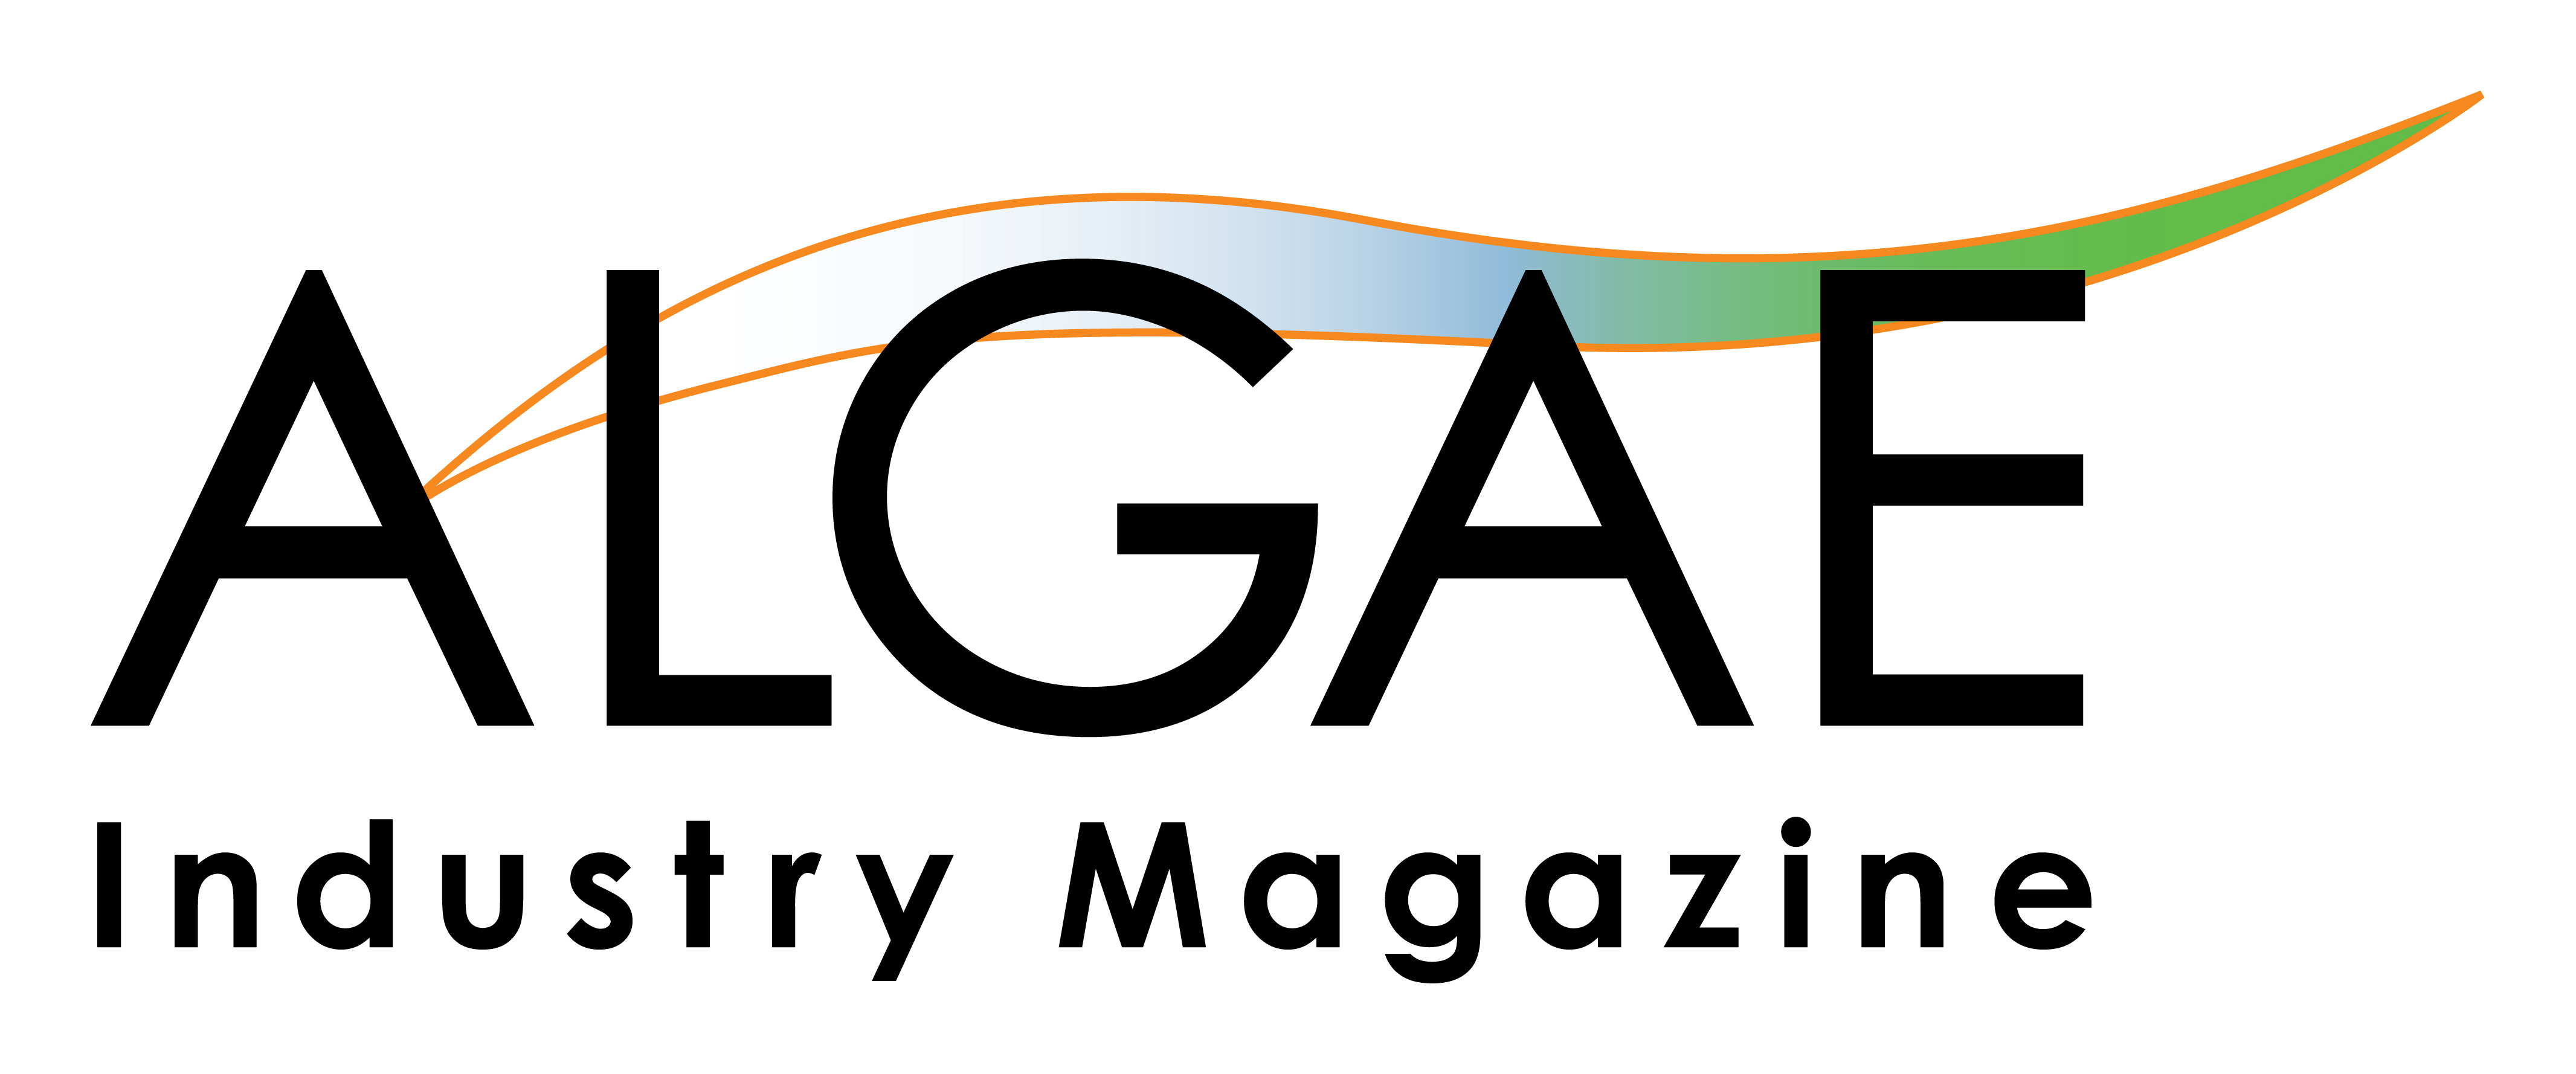 Algae Industry Magazine